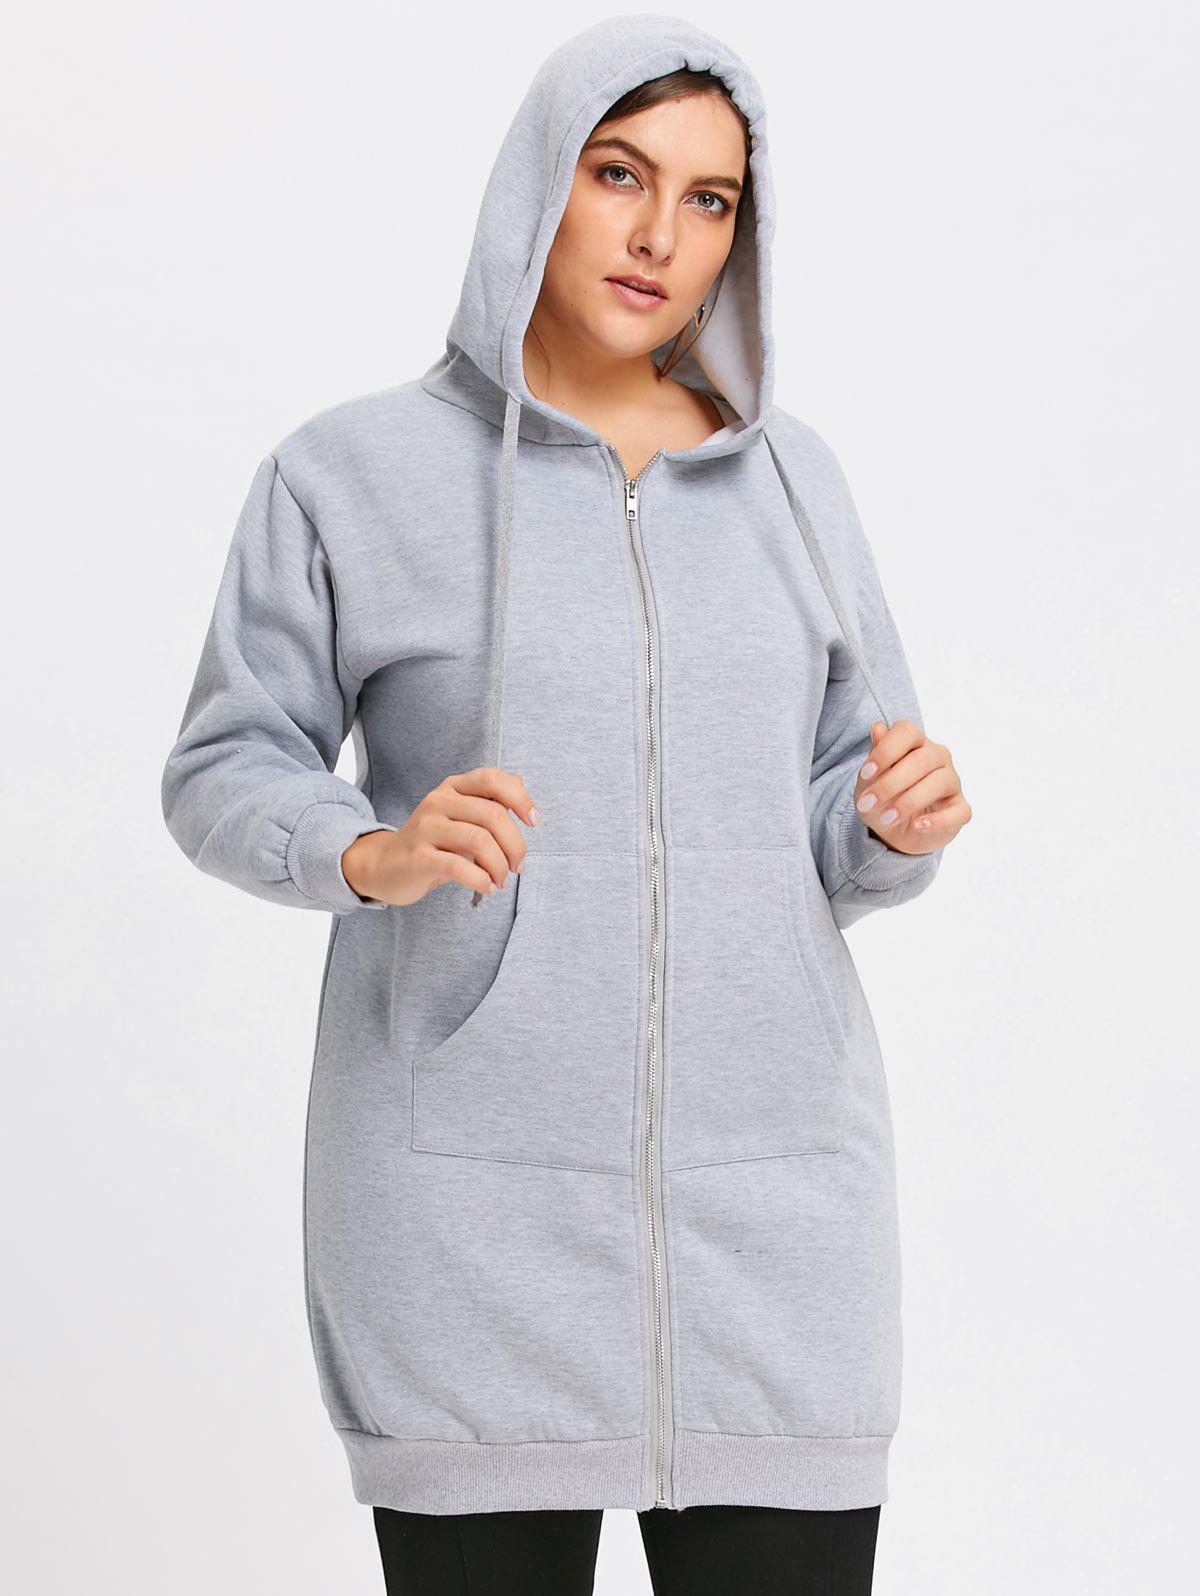 Plus Size Hooded Long Coat with Front Pocket pocket front fuzzy sweater coat